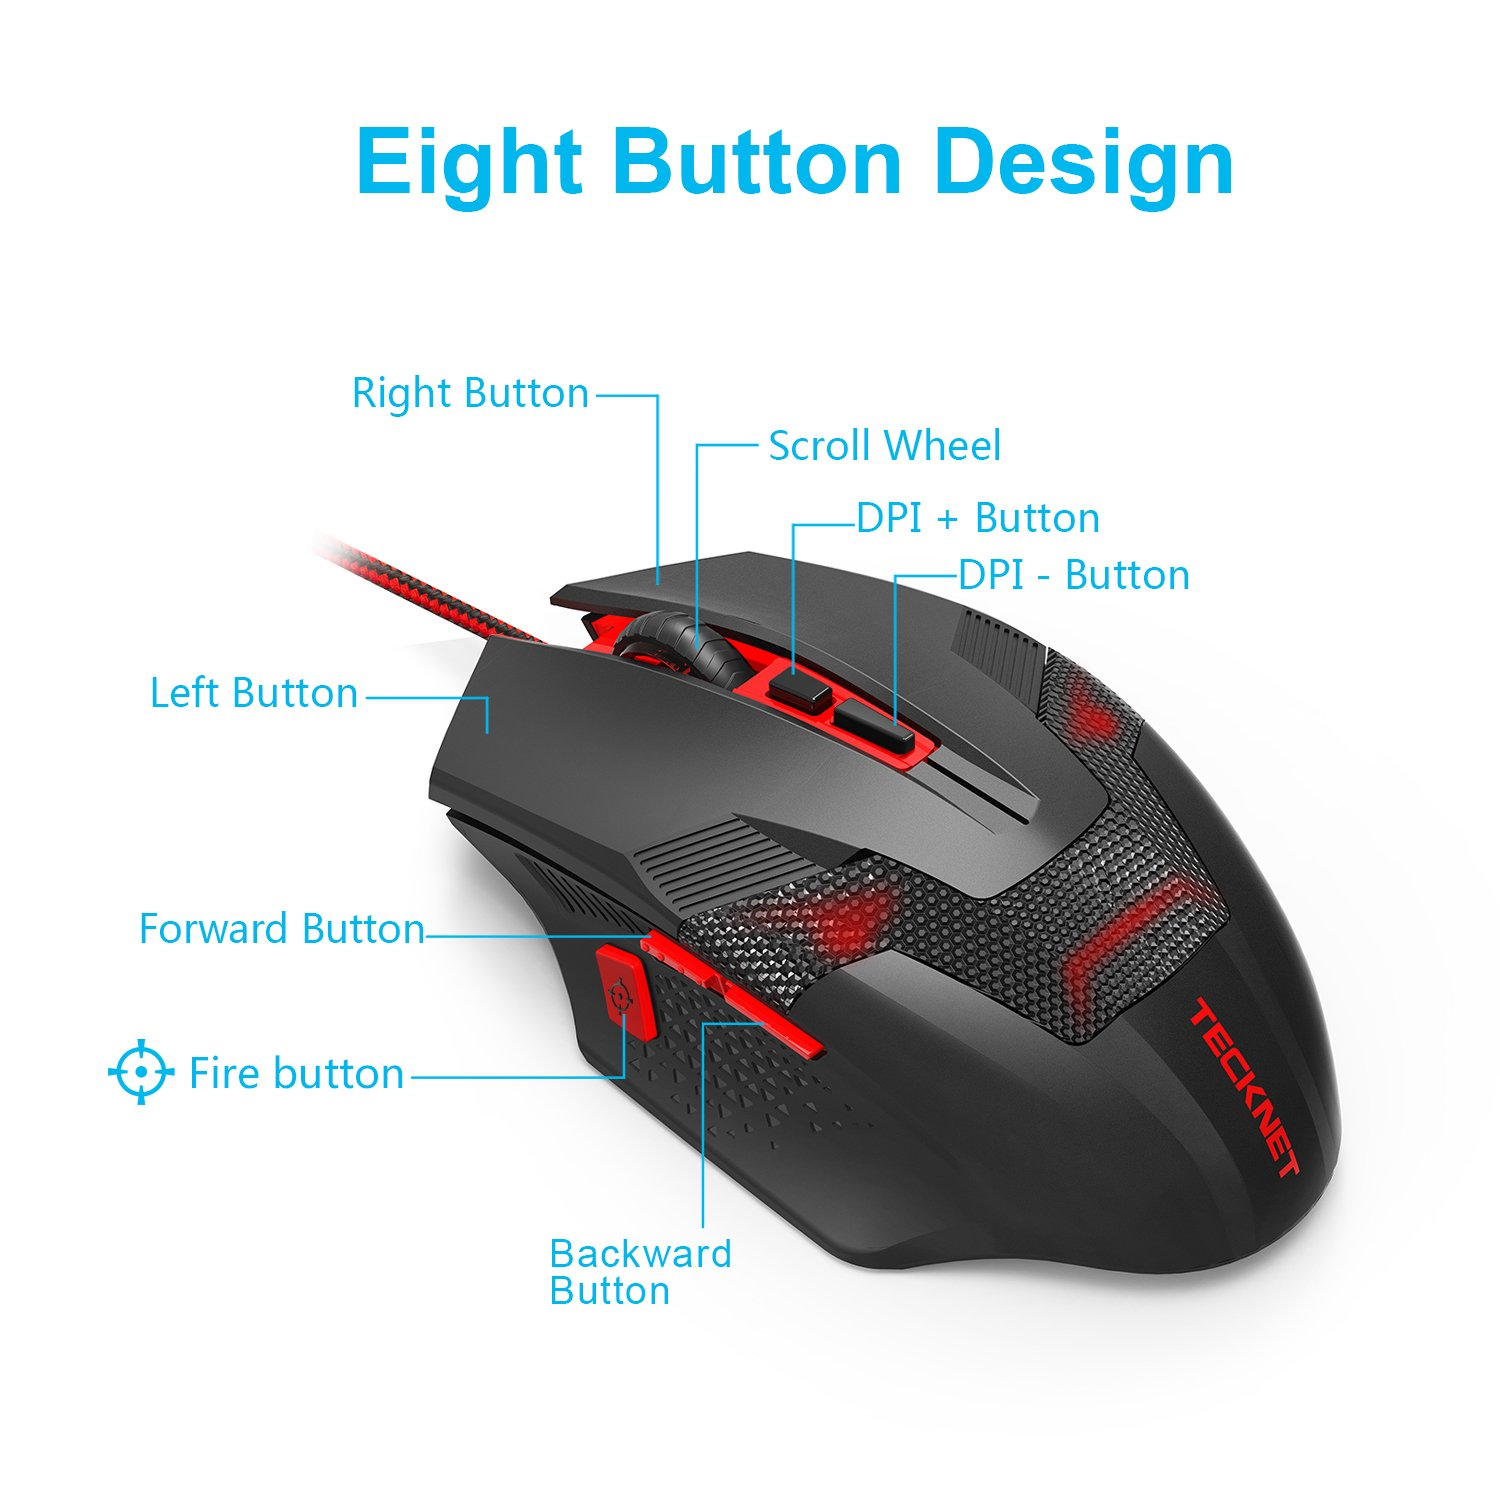 8 Breathing Light Ergonomic Design 8 Programmable Buttons Premium 7000DPI Sensor TeckNet Programmable Wired Optical Computer Gaming Mouse Extra Weight Game Mice for PC Gamer